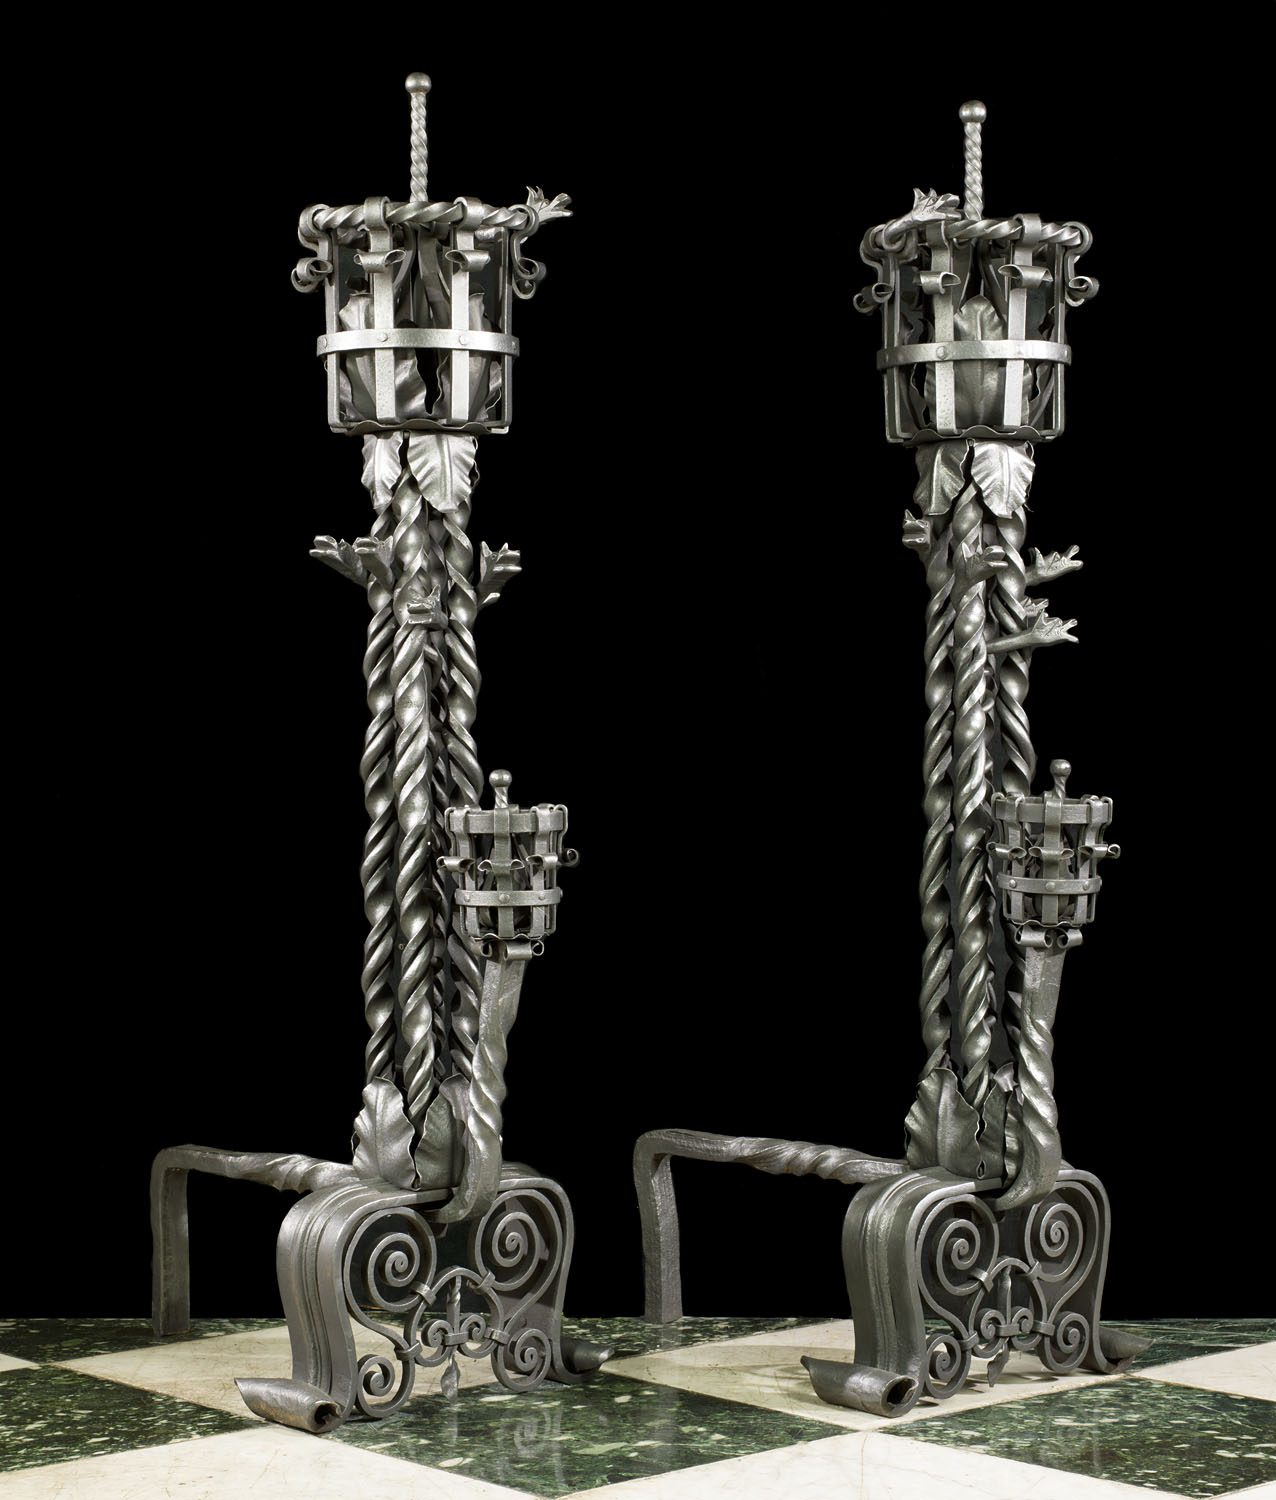 A pair of enormous Gothic Revival of antique wrought iron andirons